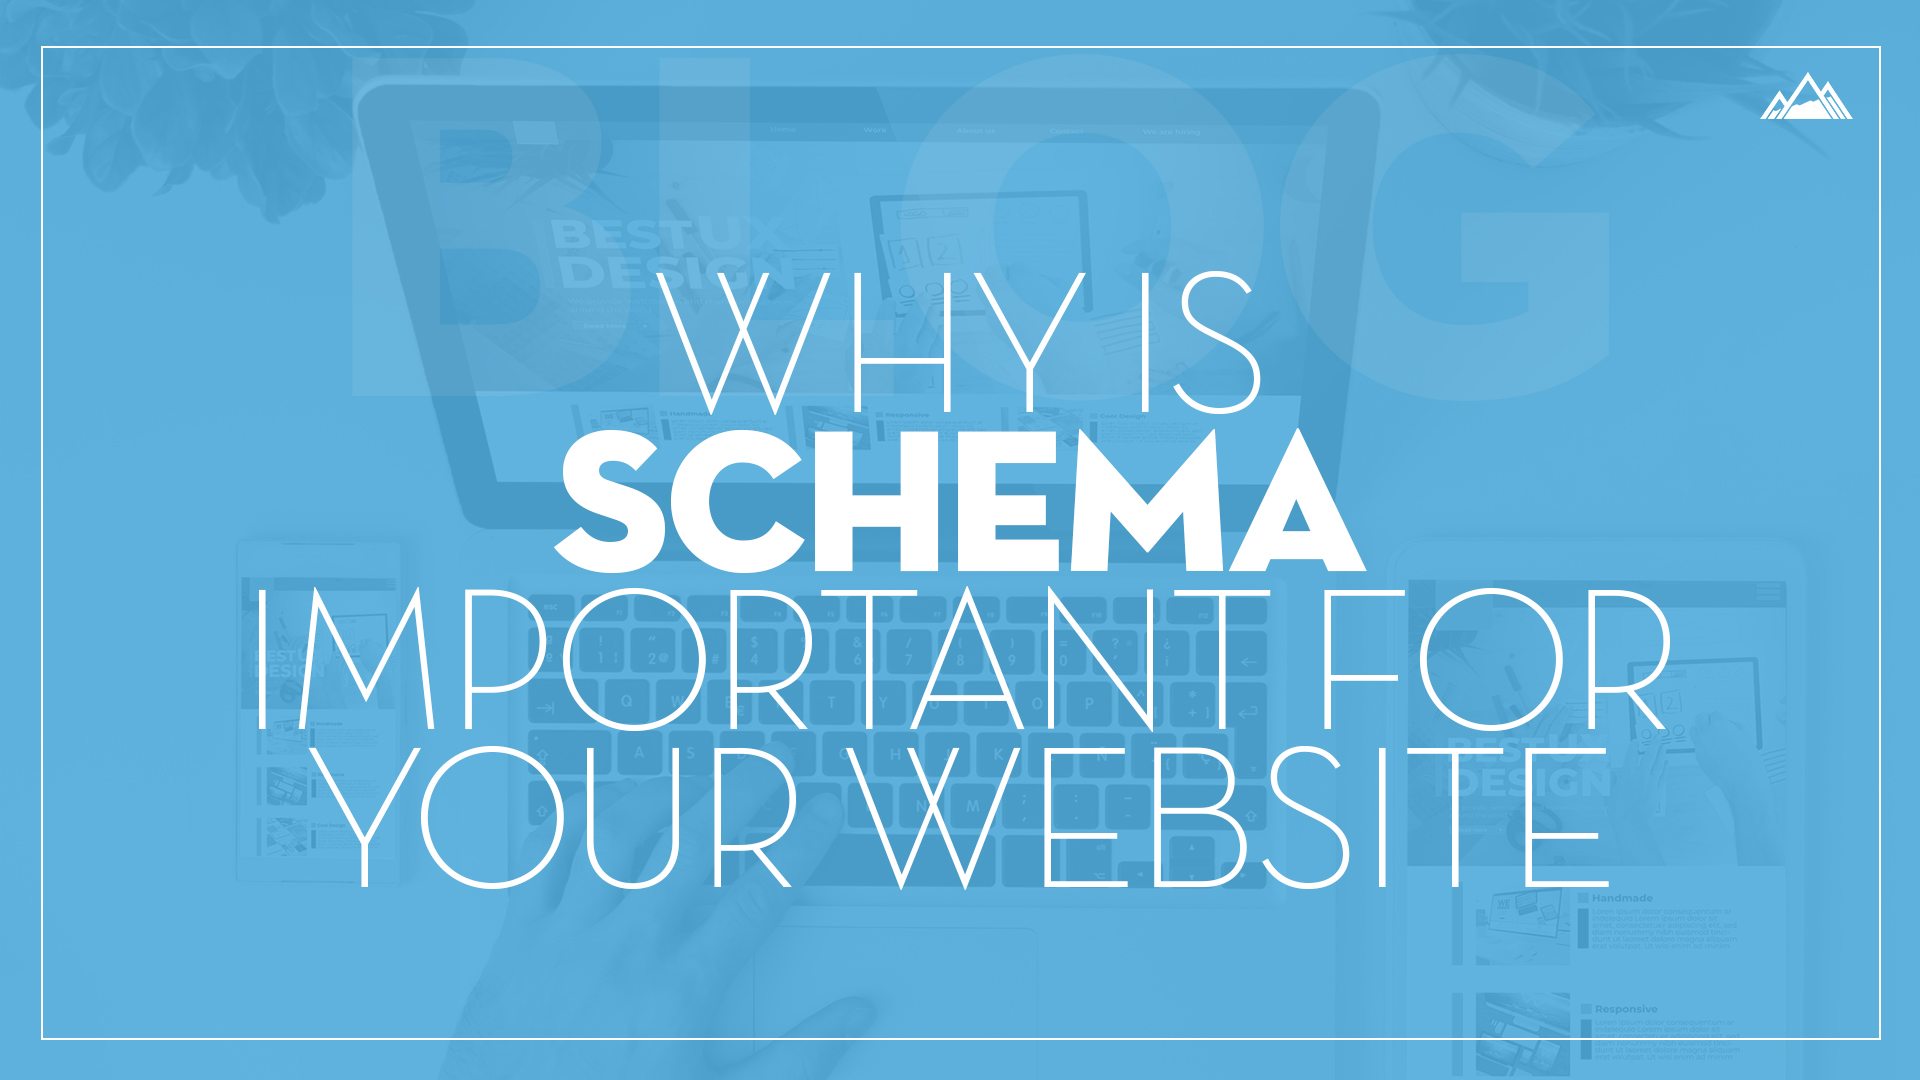 Why Is Schema Important for Your Website?